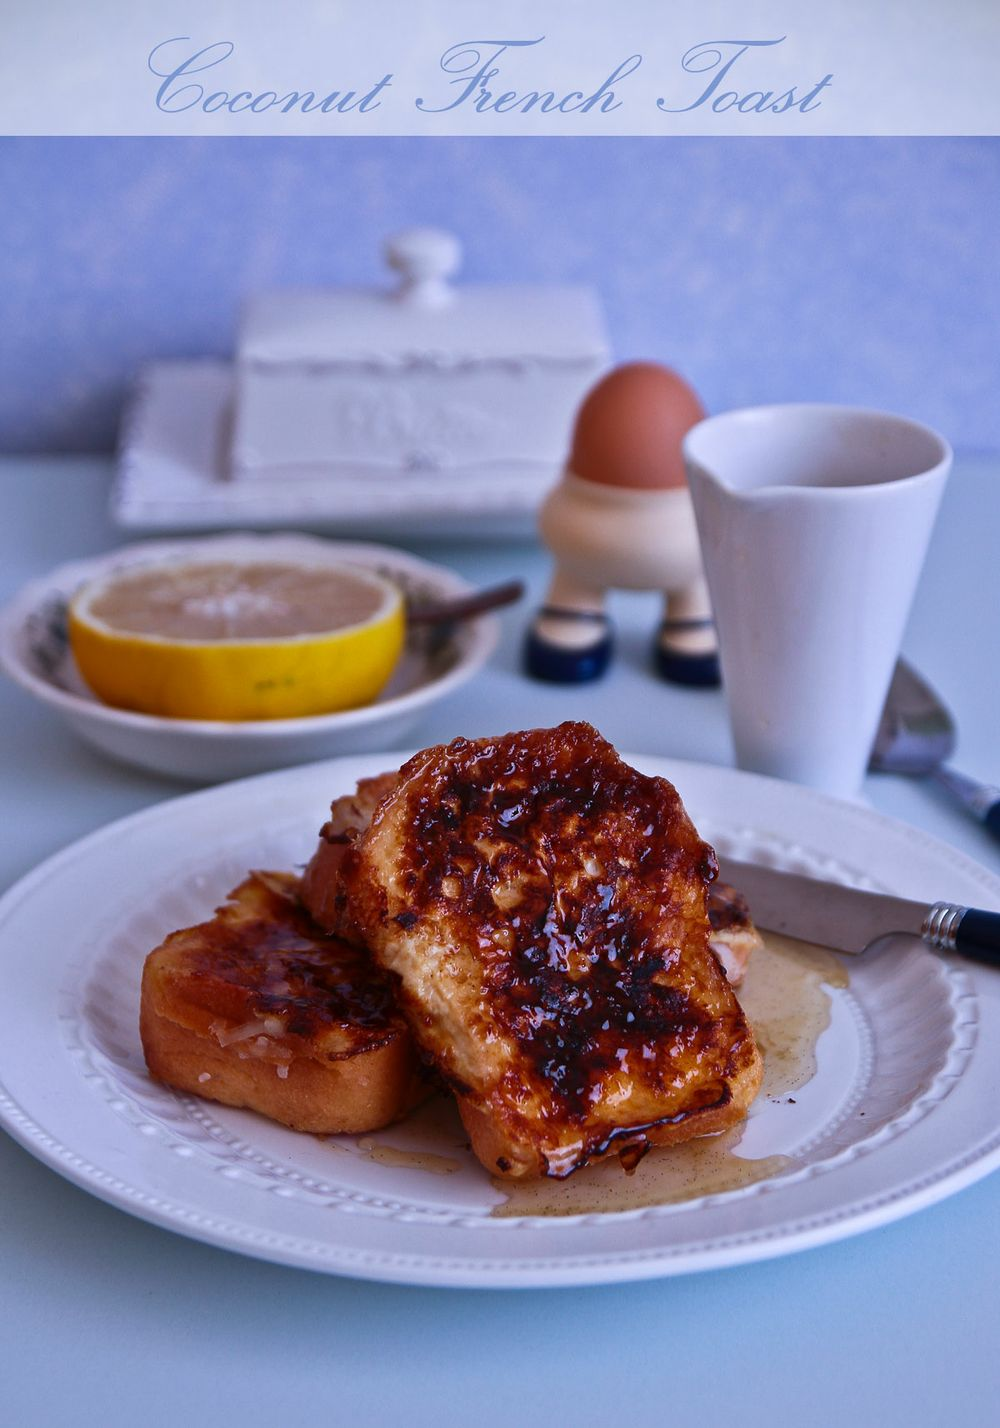 coconut french toast rum syrup